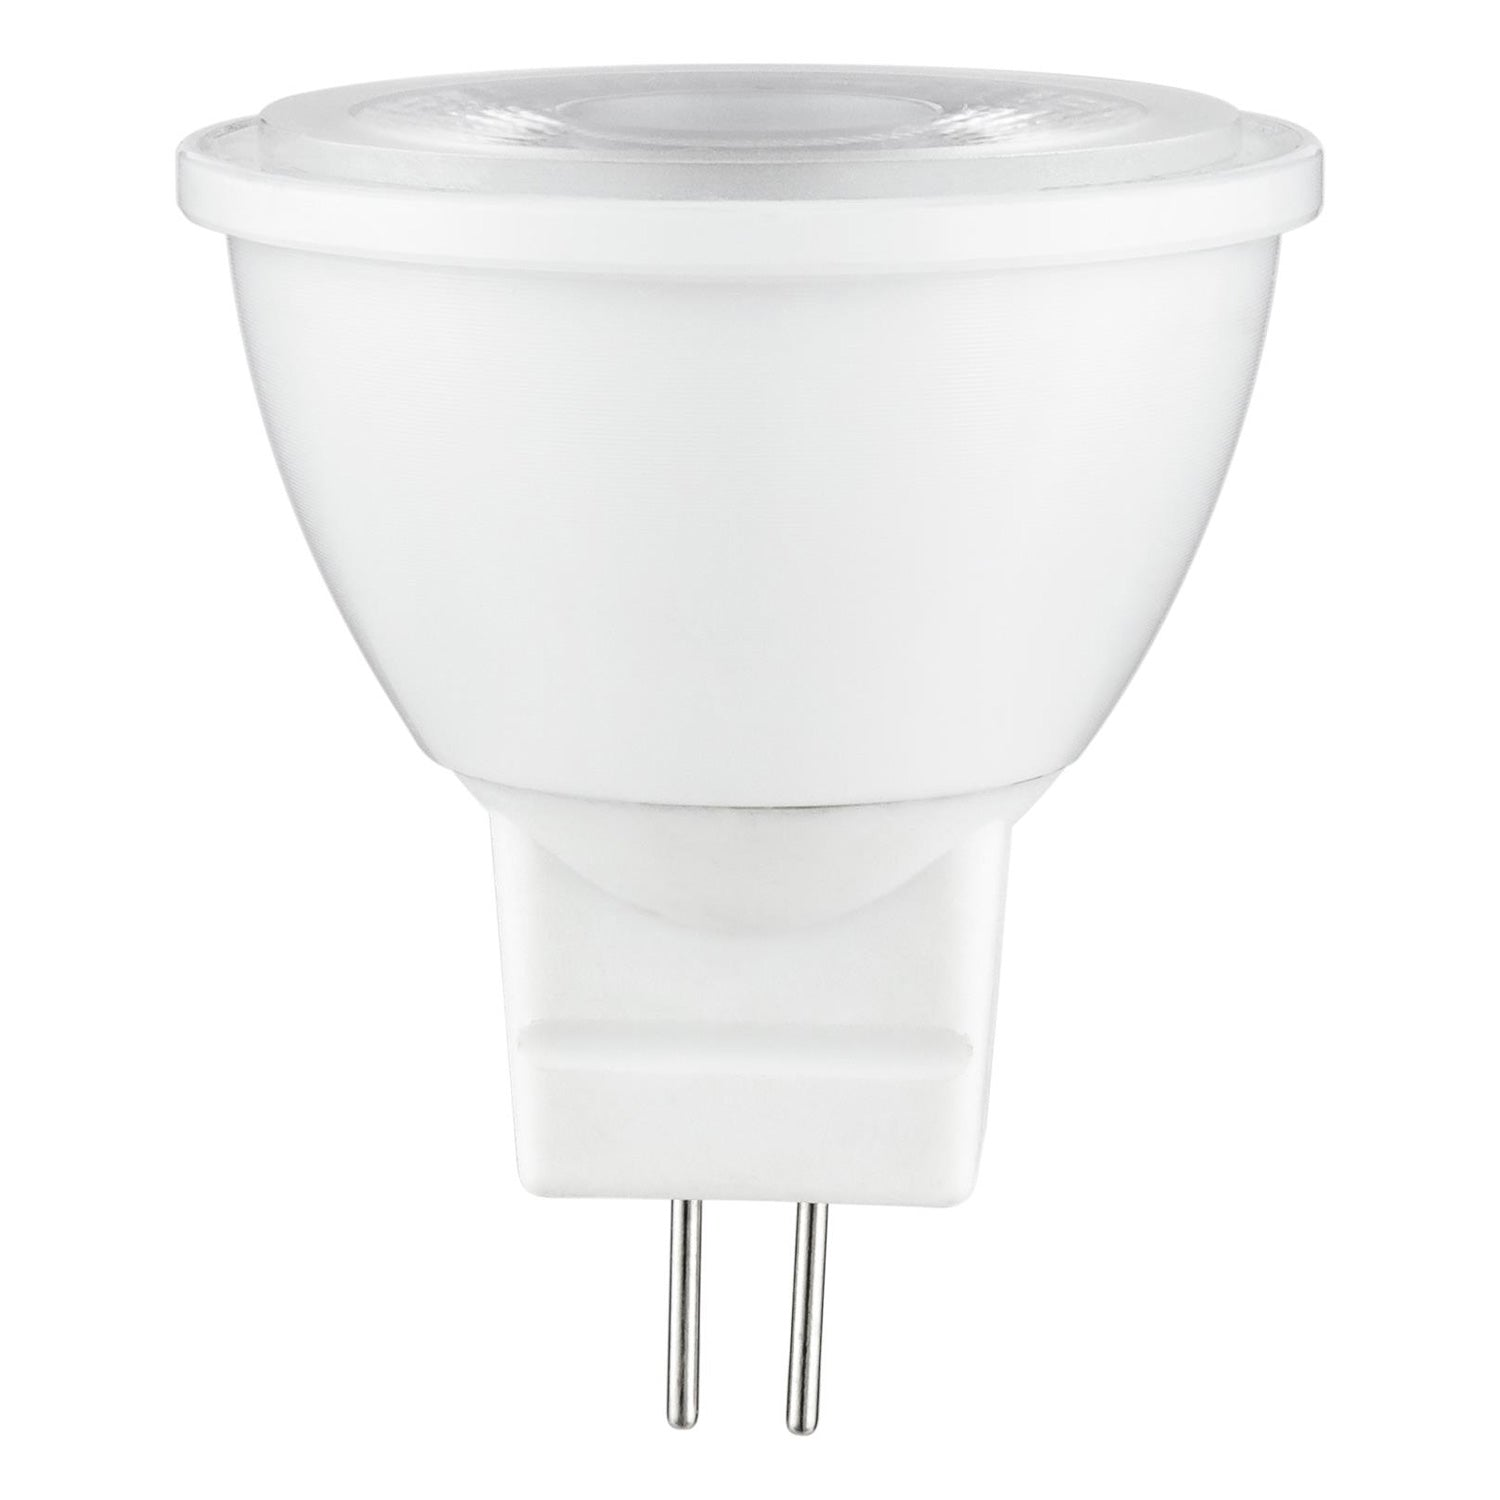 SUNLITE 3w LED MR11 Warm White 3000k GU4 FL25 Light bulb - 35w Equivalent